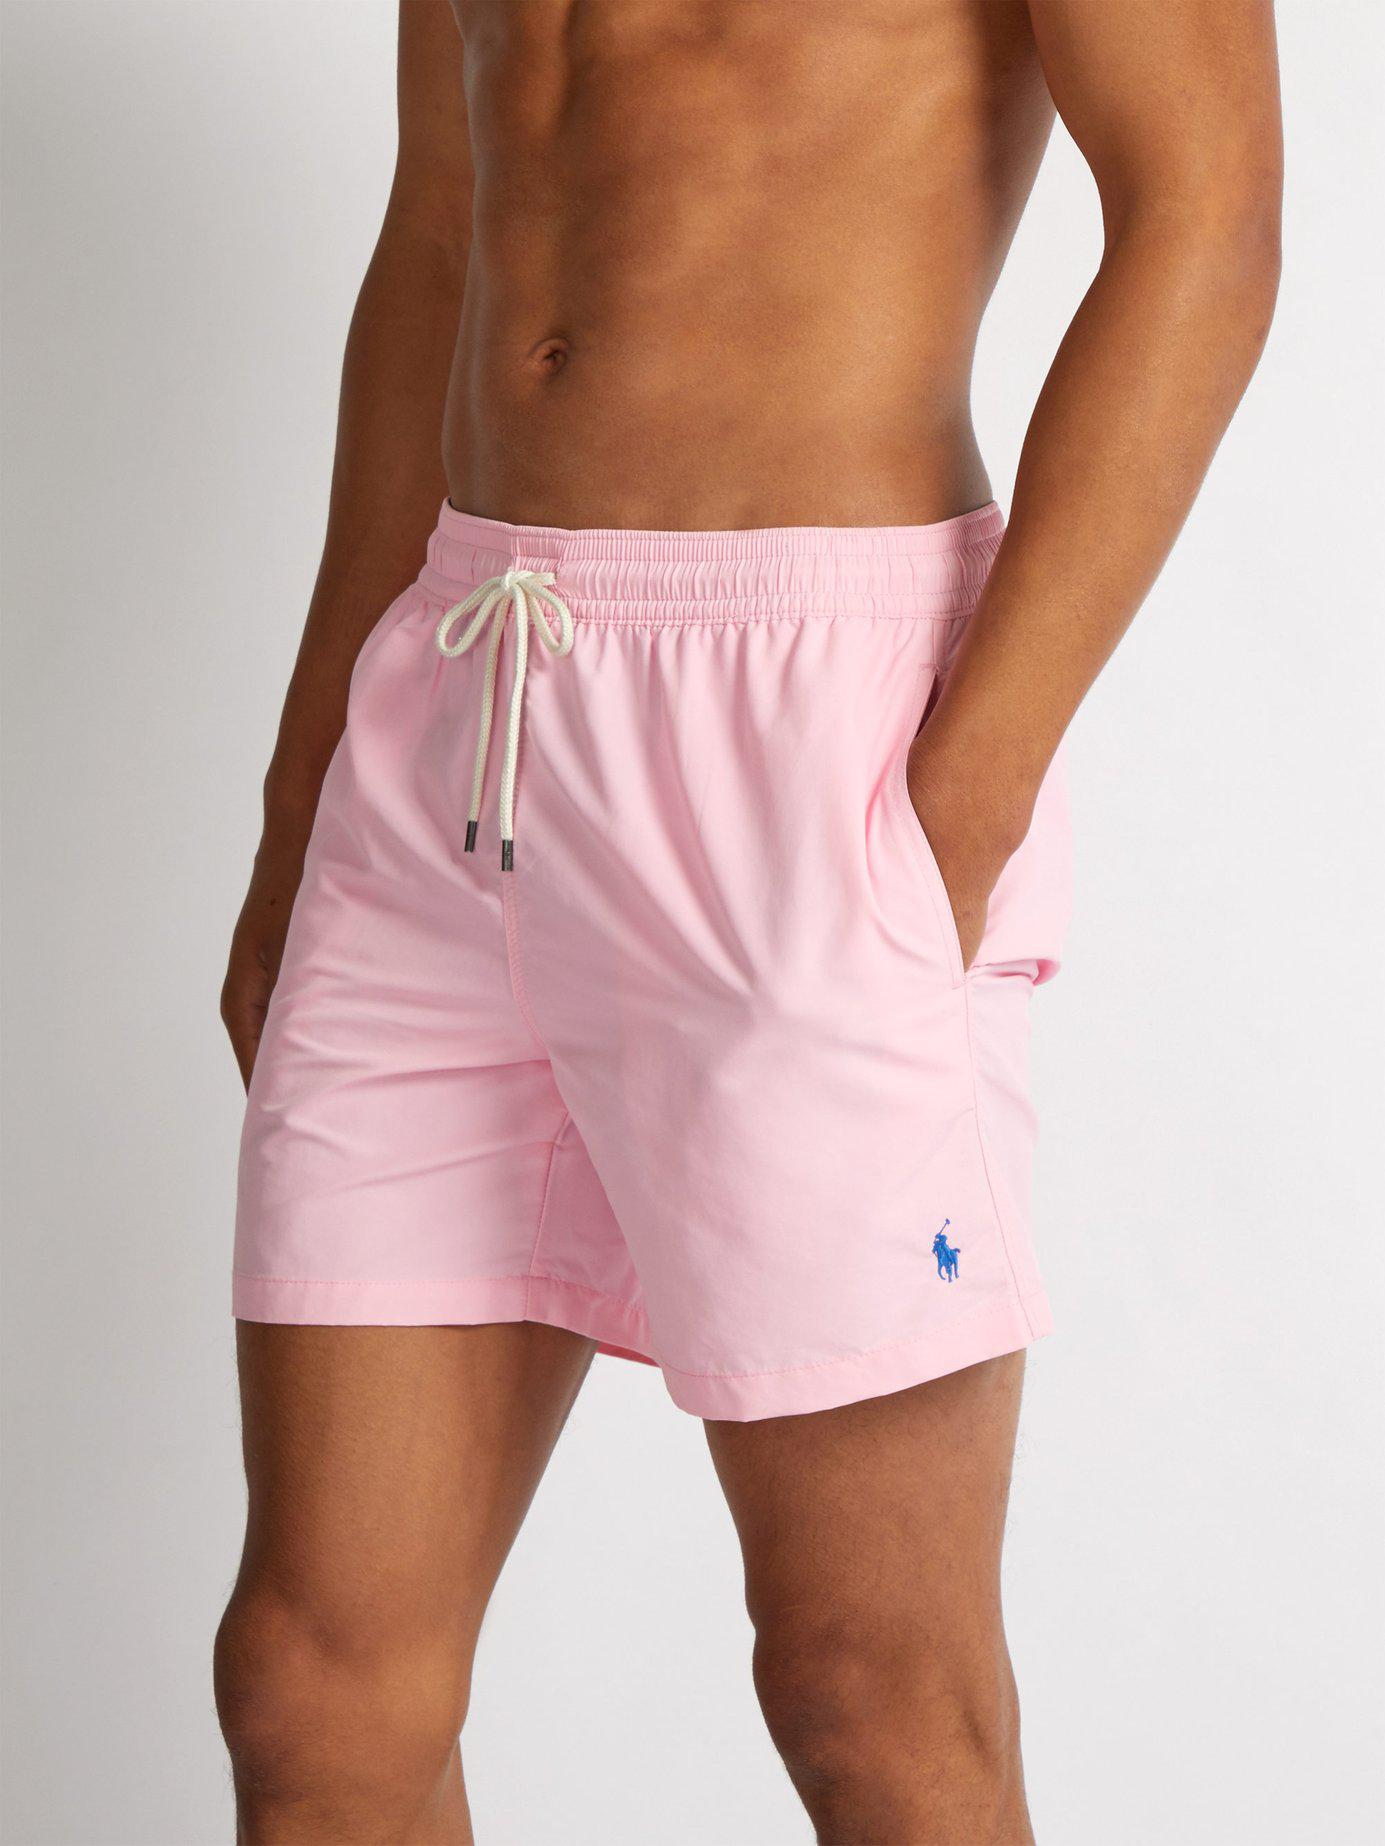 015a420840ece Lyst - Polo Ralph Lauren Traveller Swim Shorts in Pink for Men - Save 27%